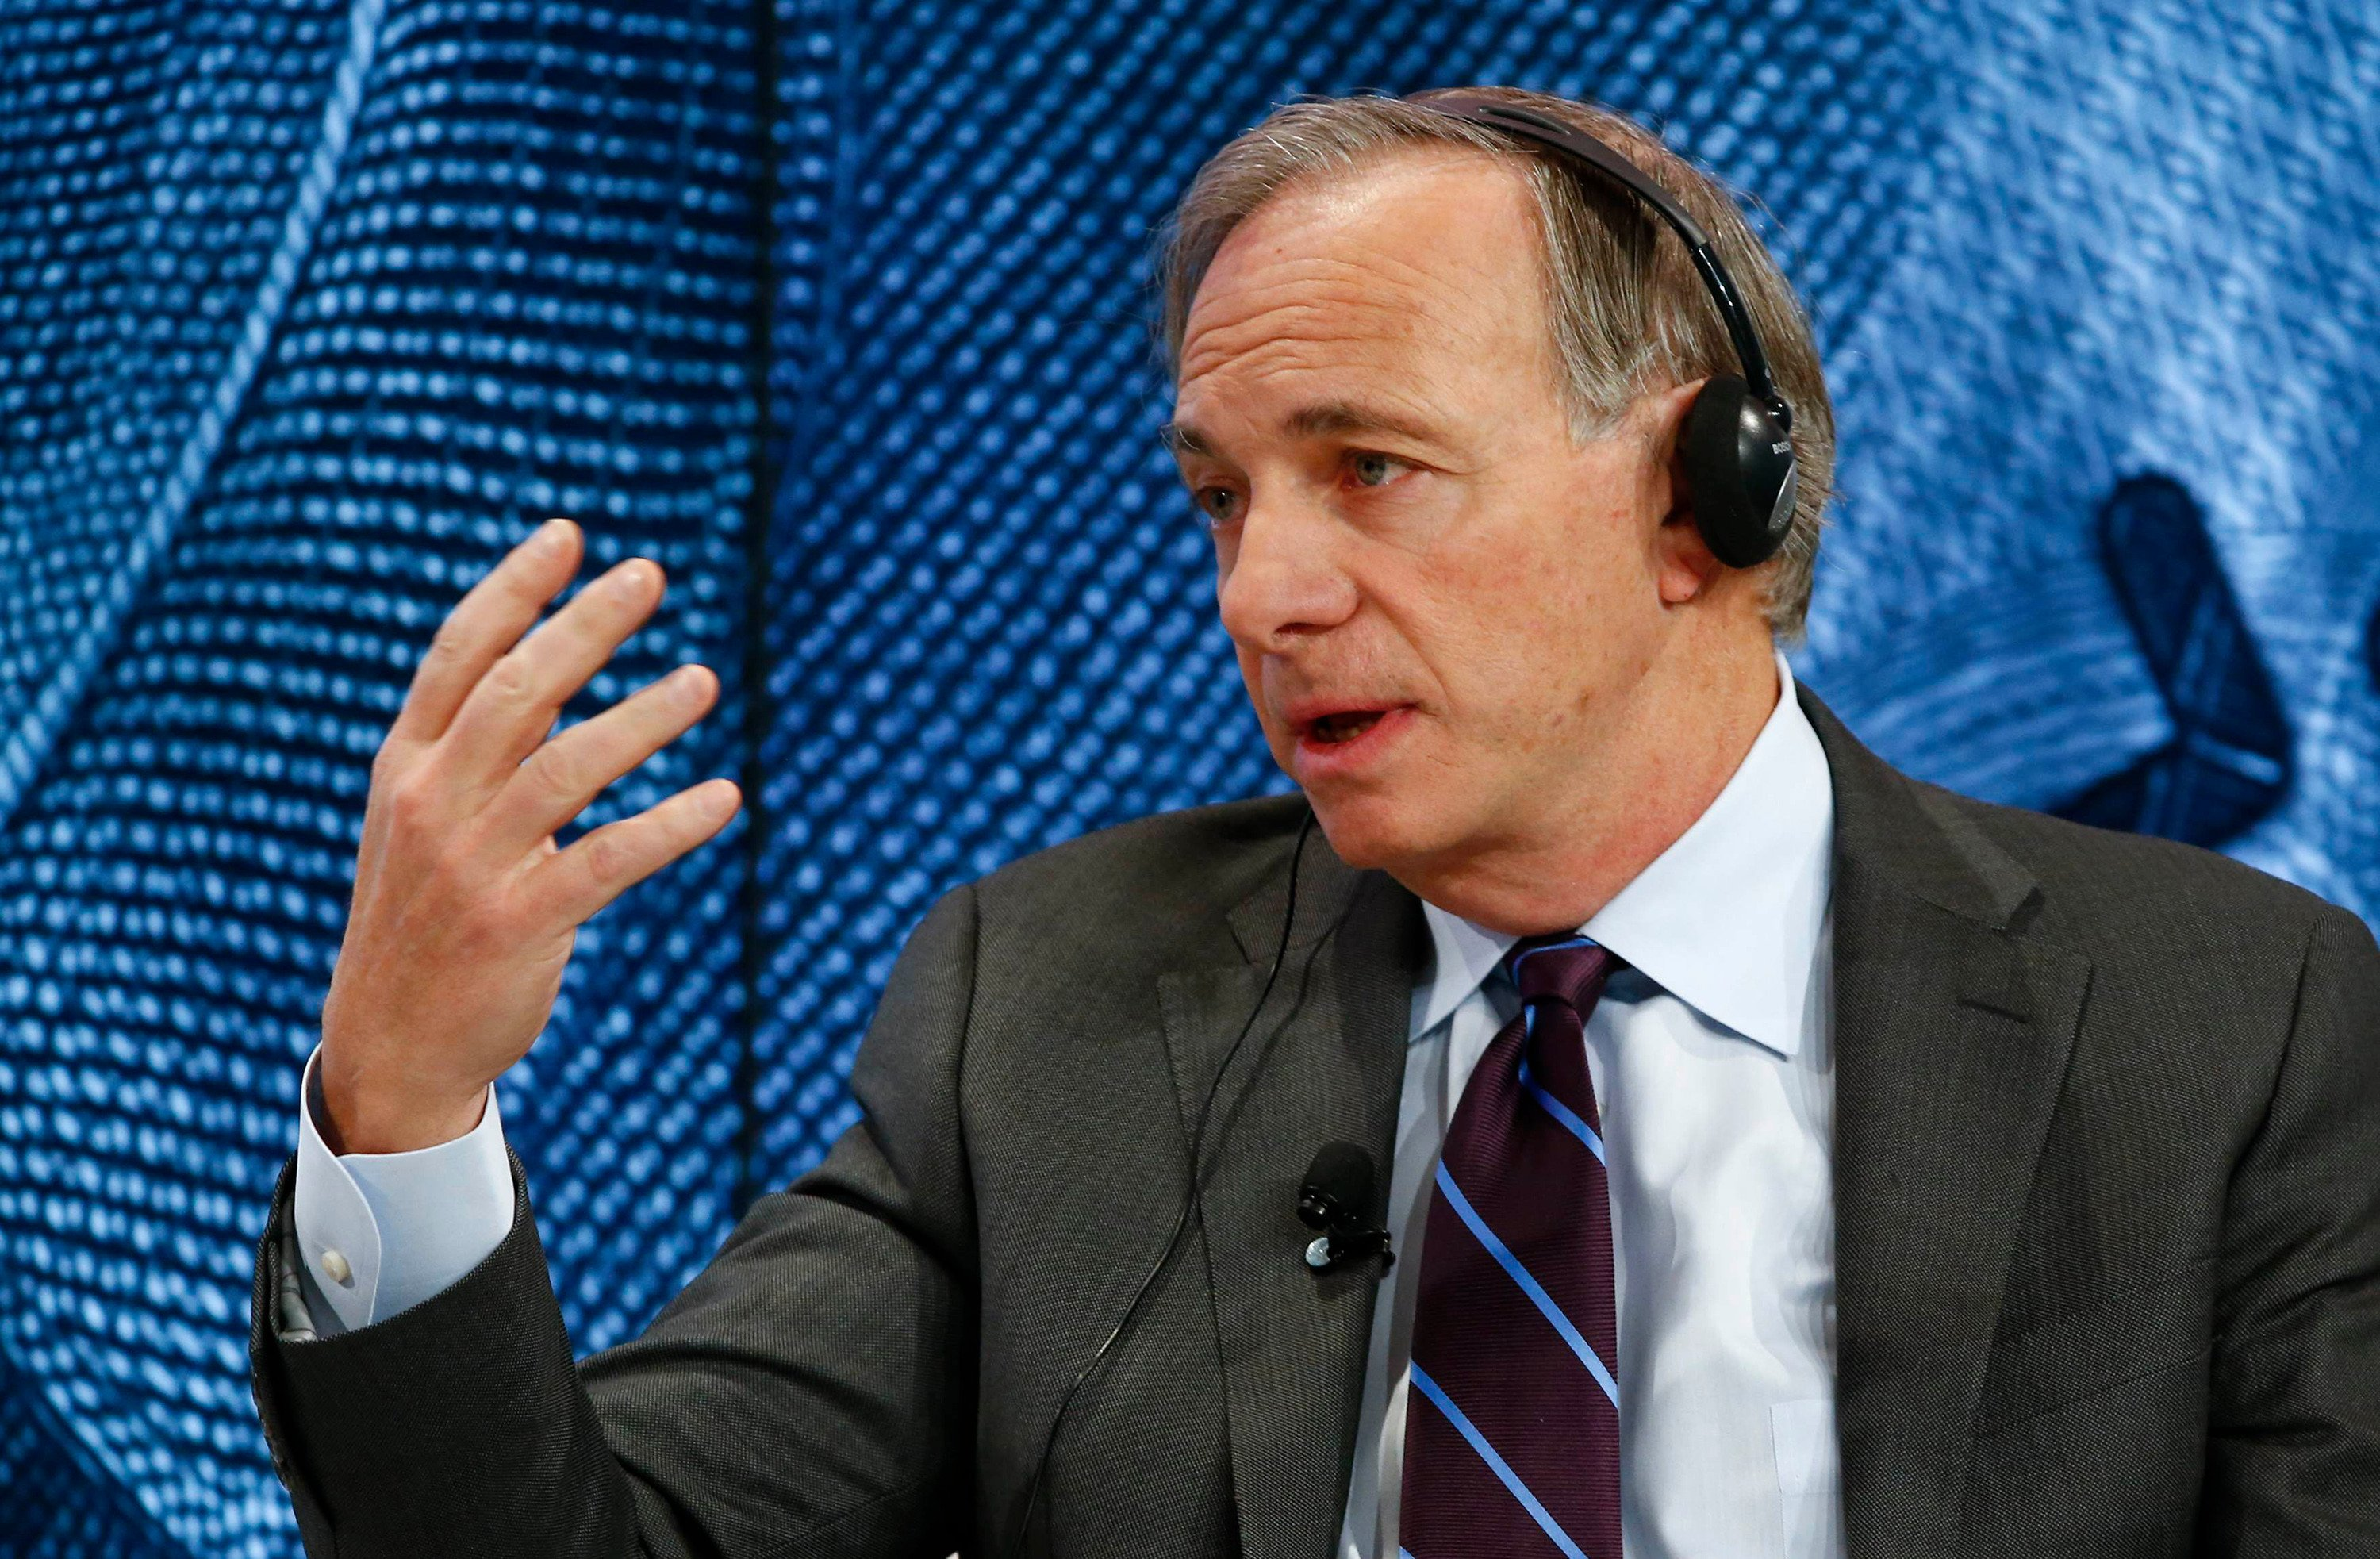 Ray Dalio sees 70 percent chance of US recession by 2020